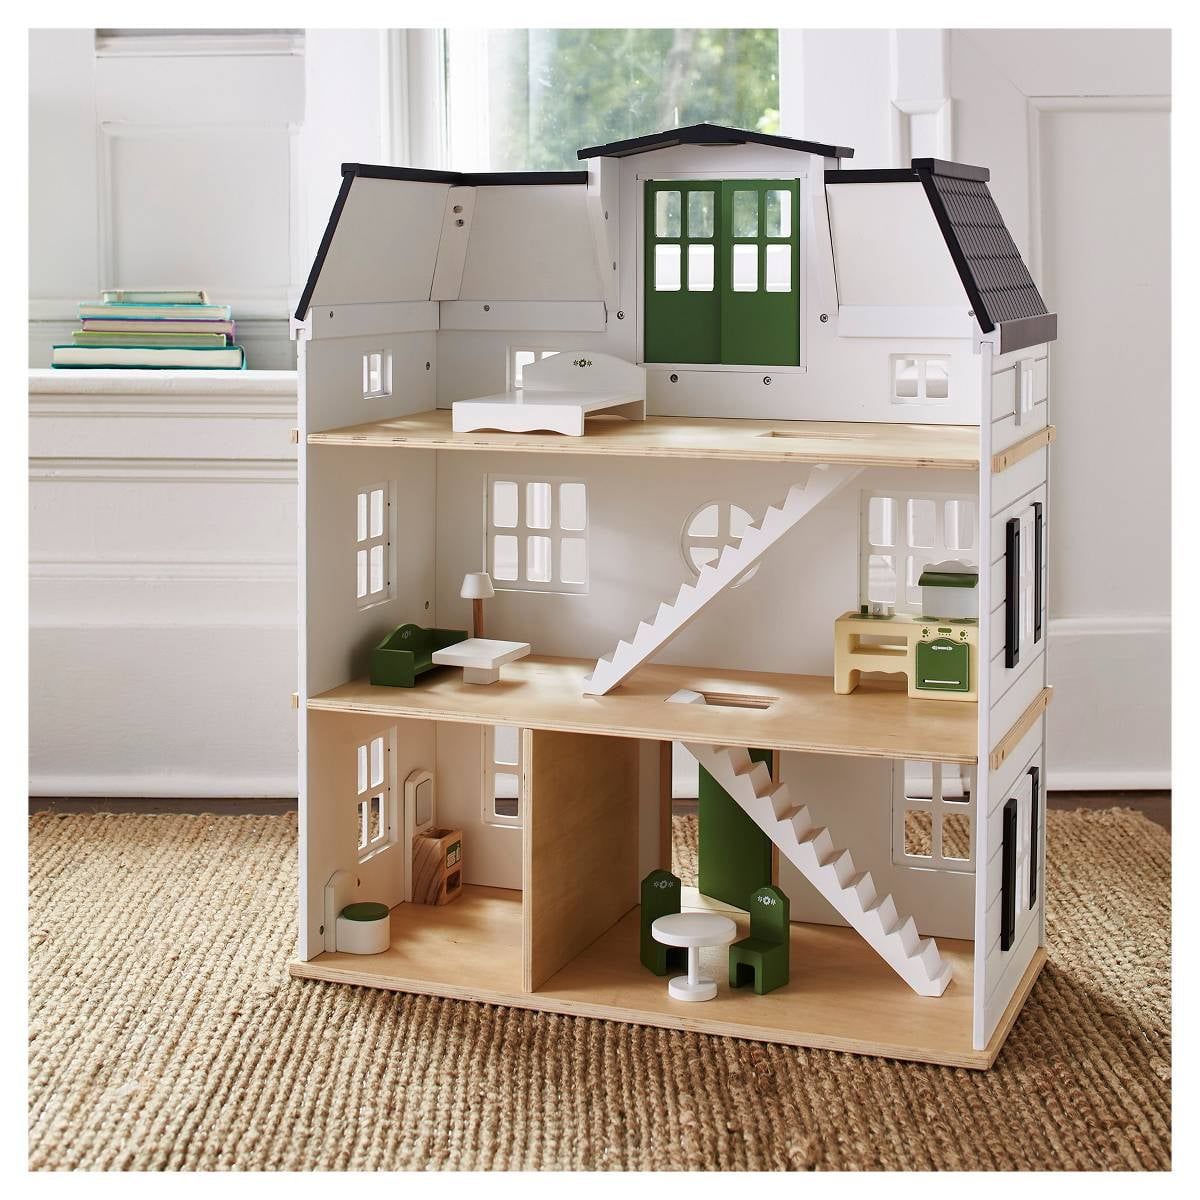 Doll House At Target House Plan 2017